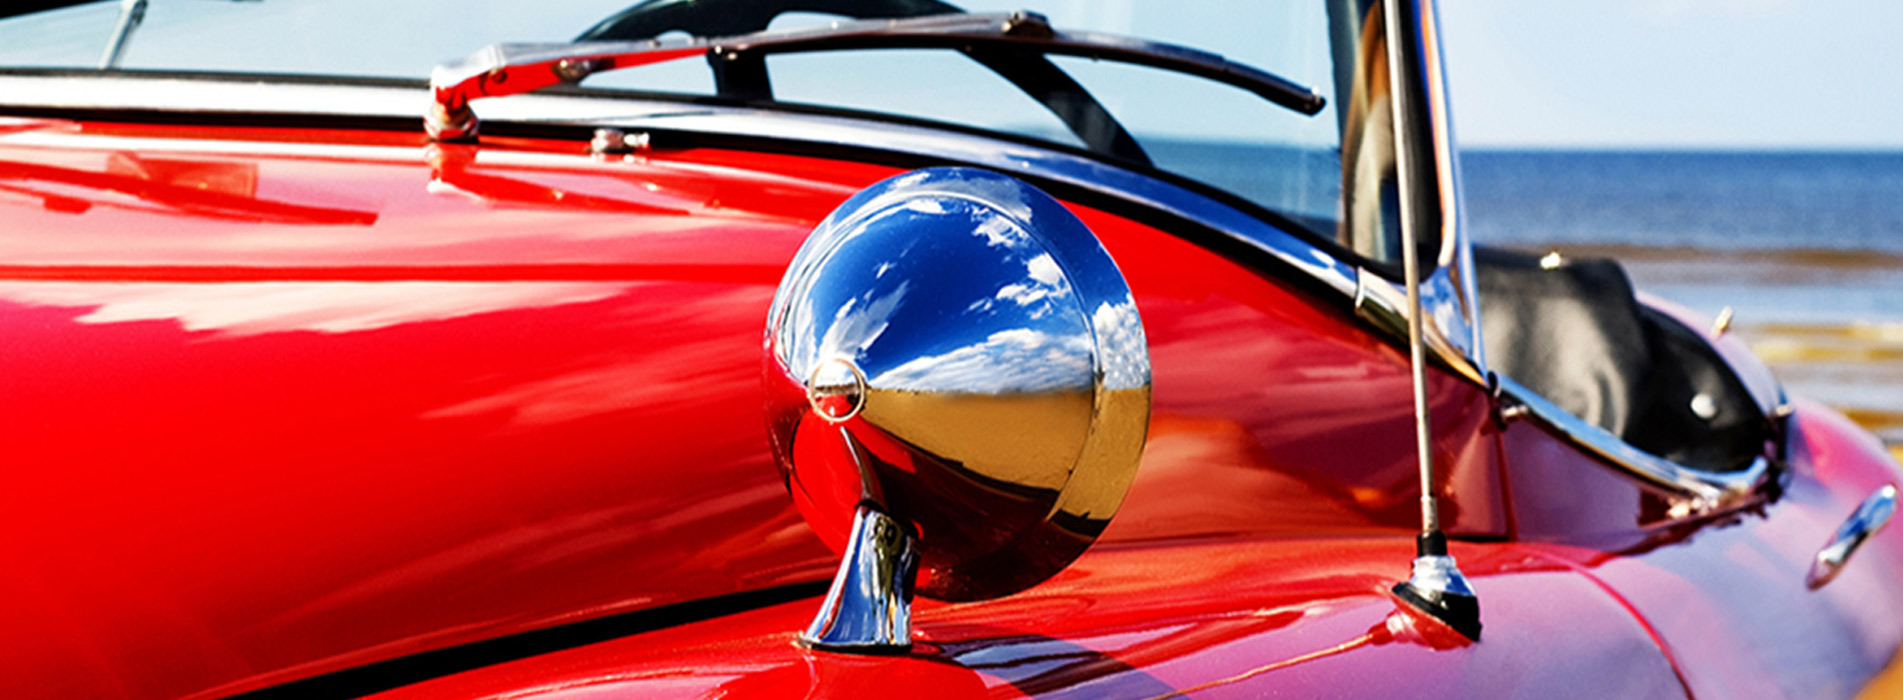 Oklahoma Classic Car Insurance coverage